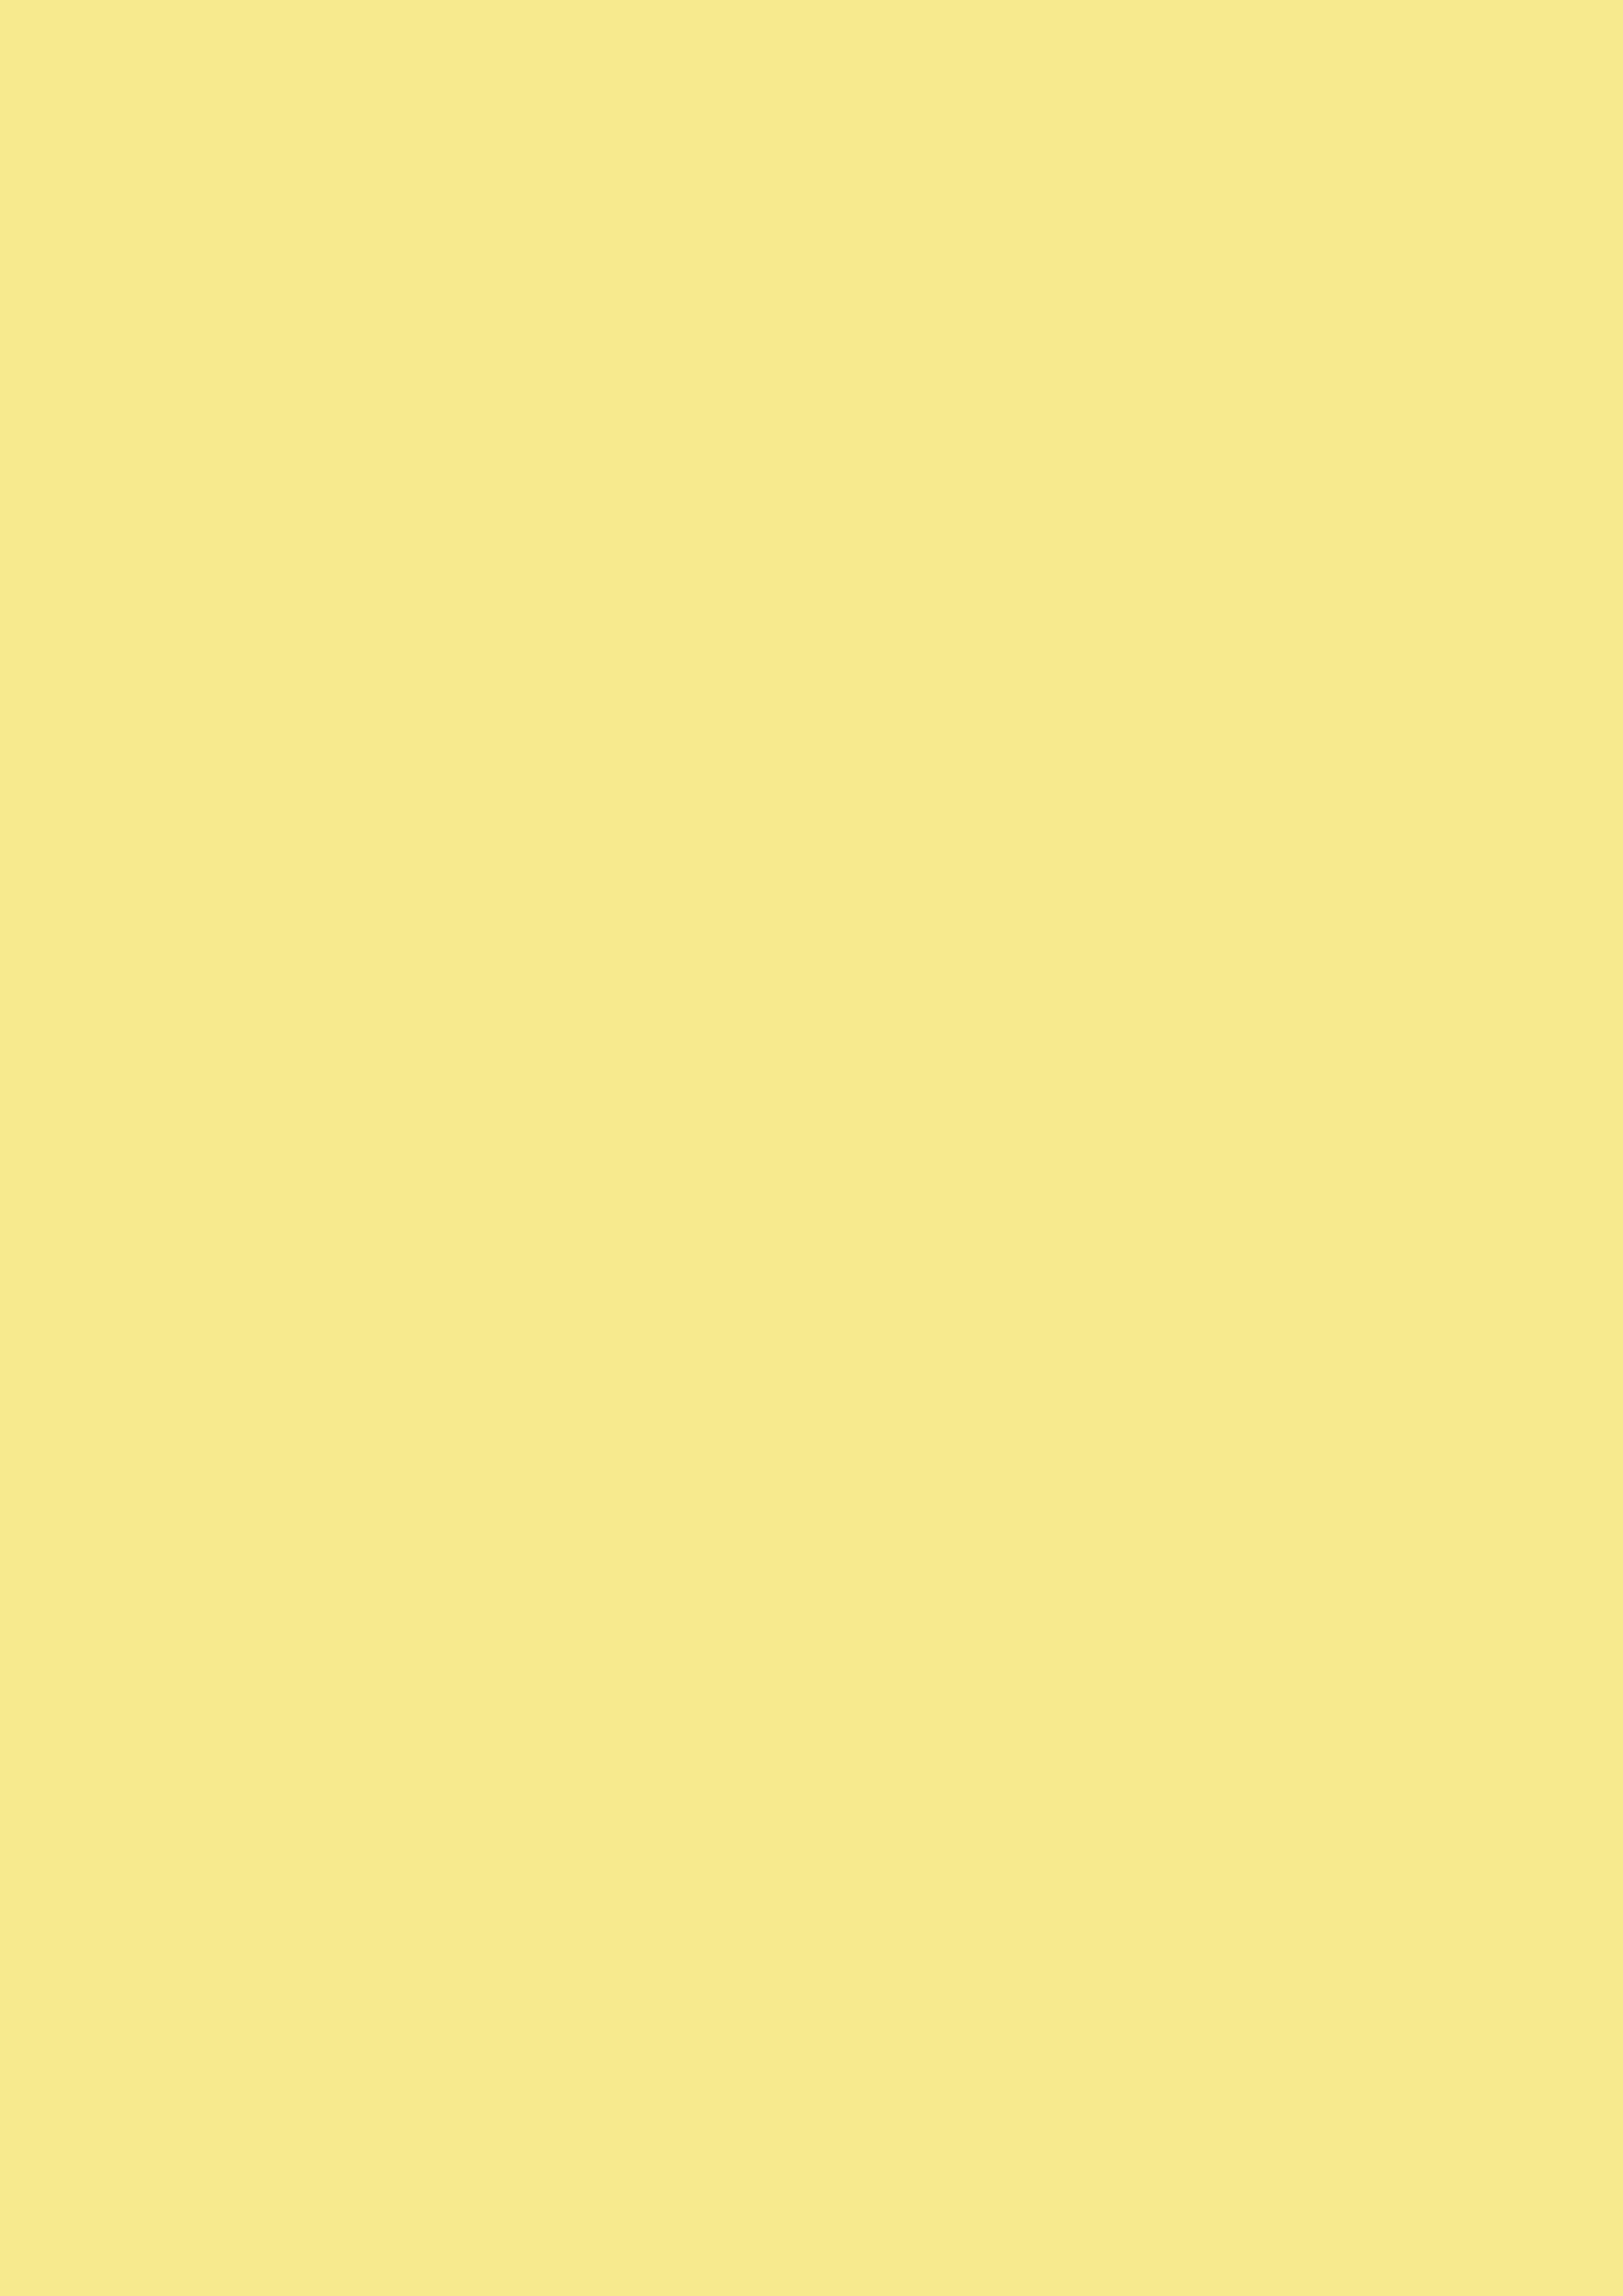 2480x3508 Flavescent Solid Color Background